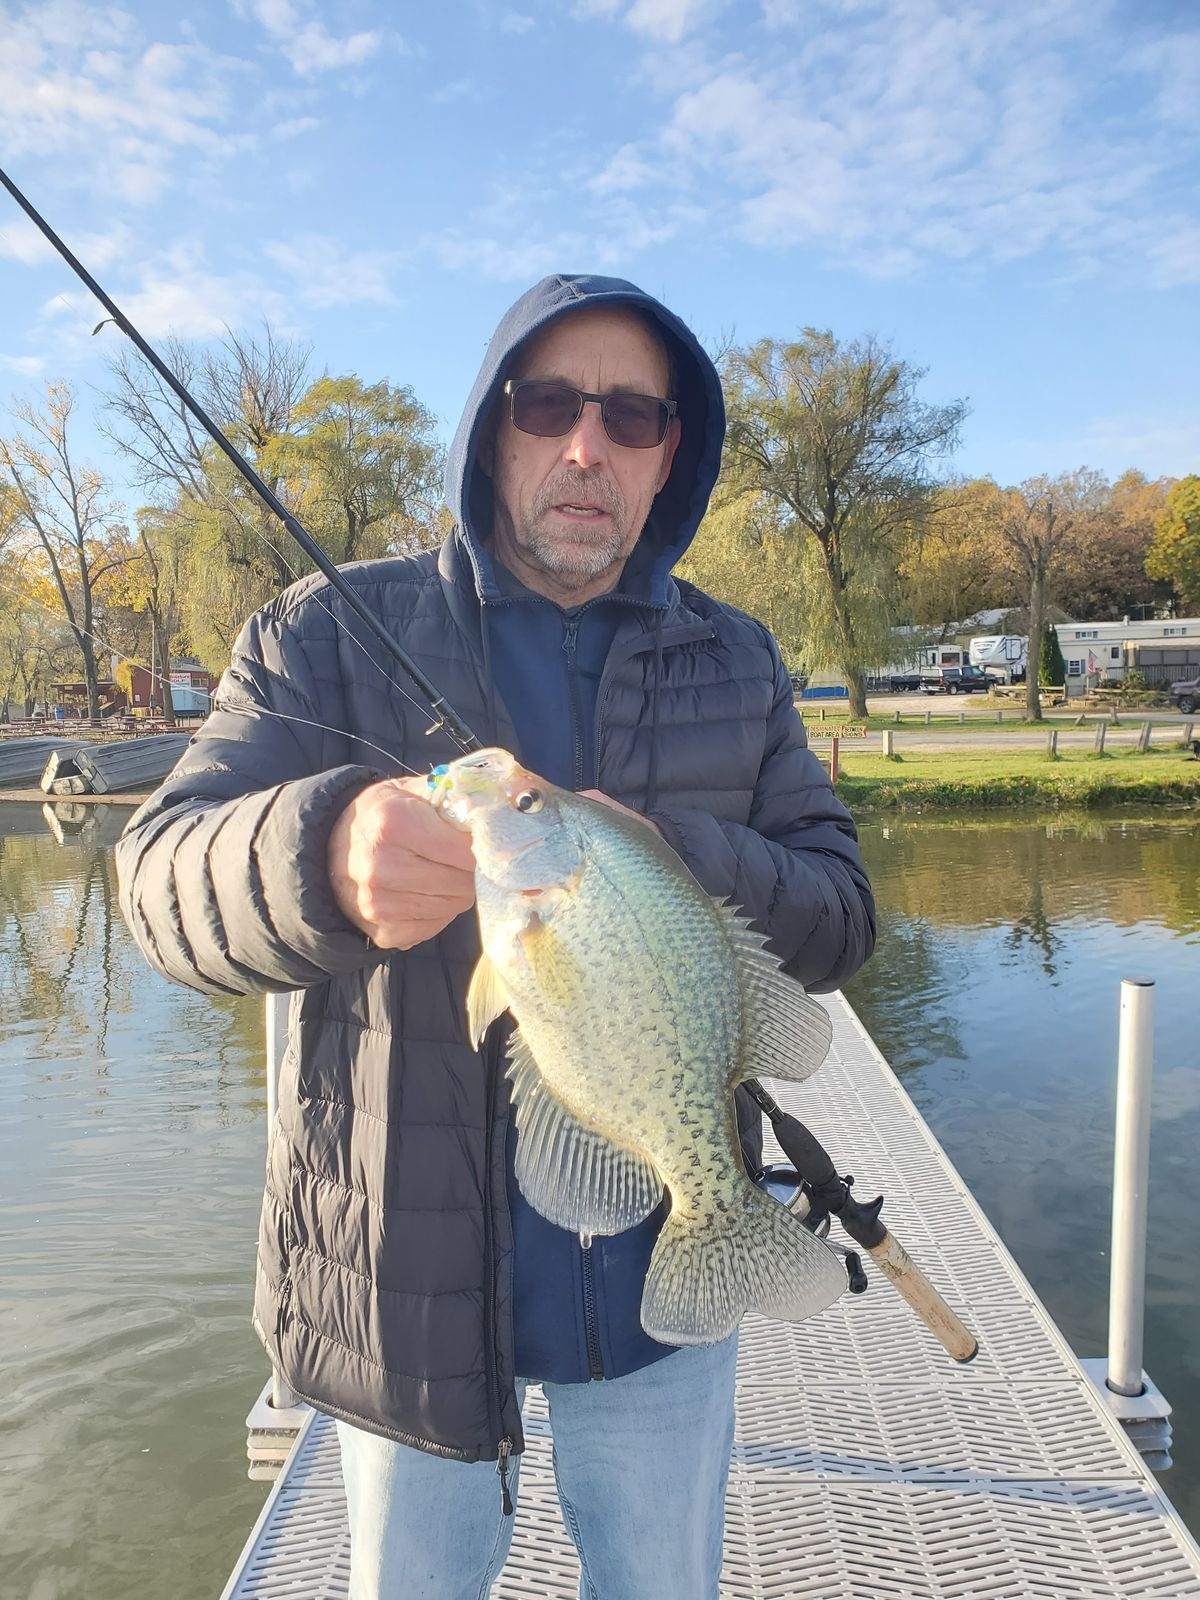 Ben Thompson with a nice crappie from Fish Lake. Provided by Bob France